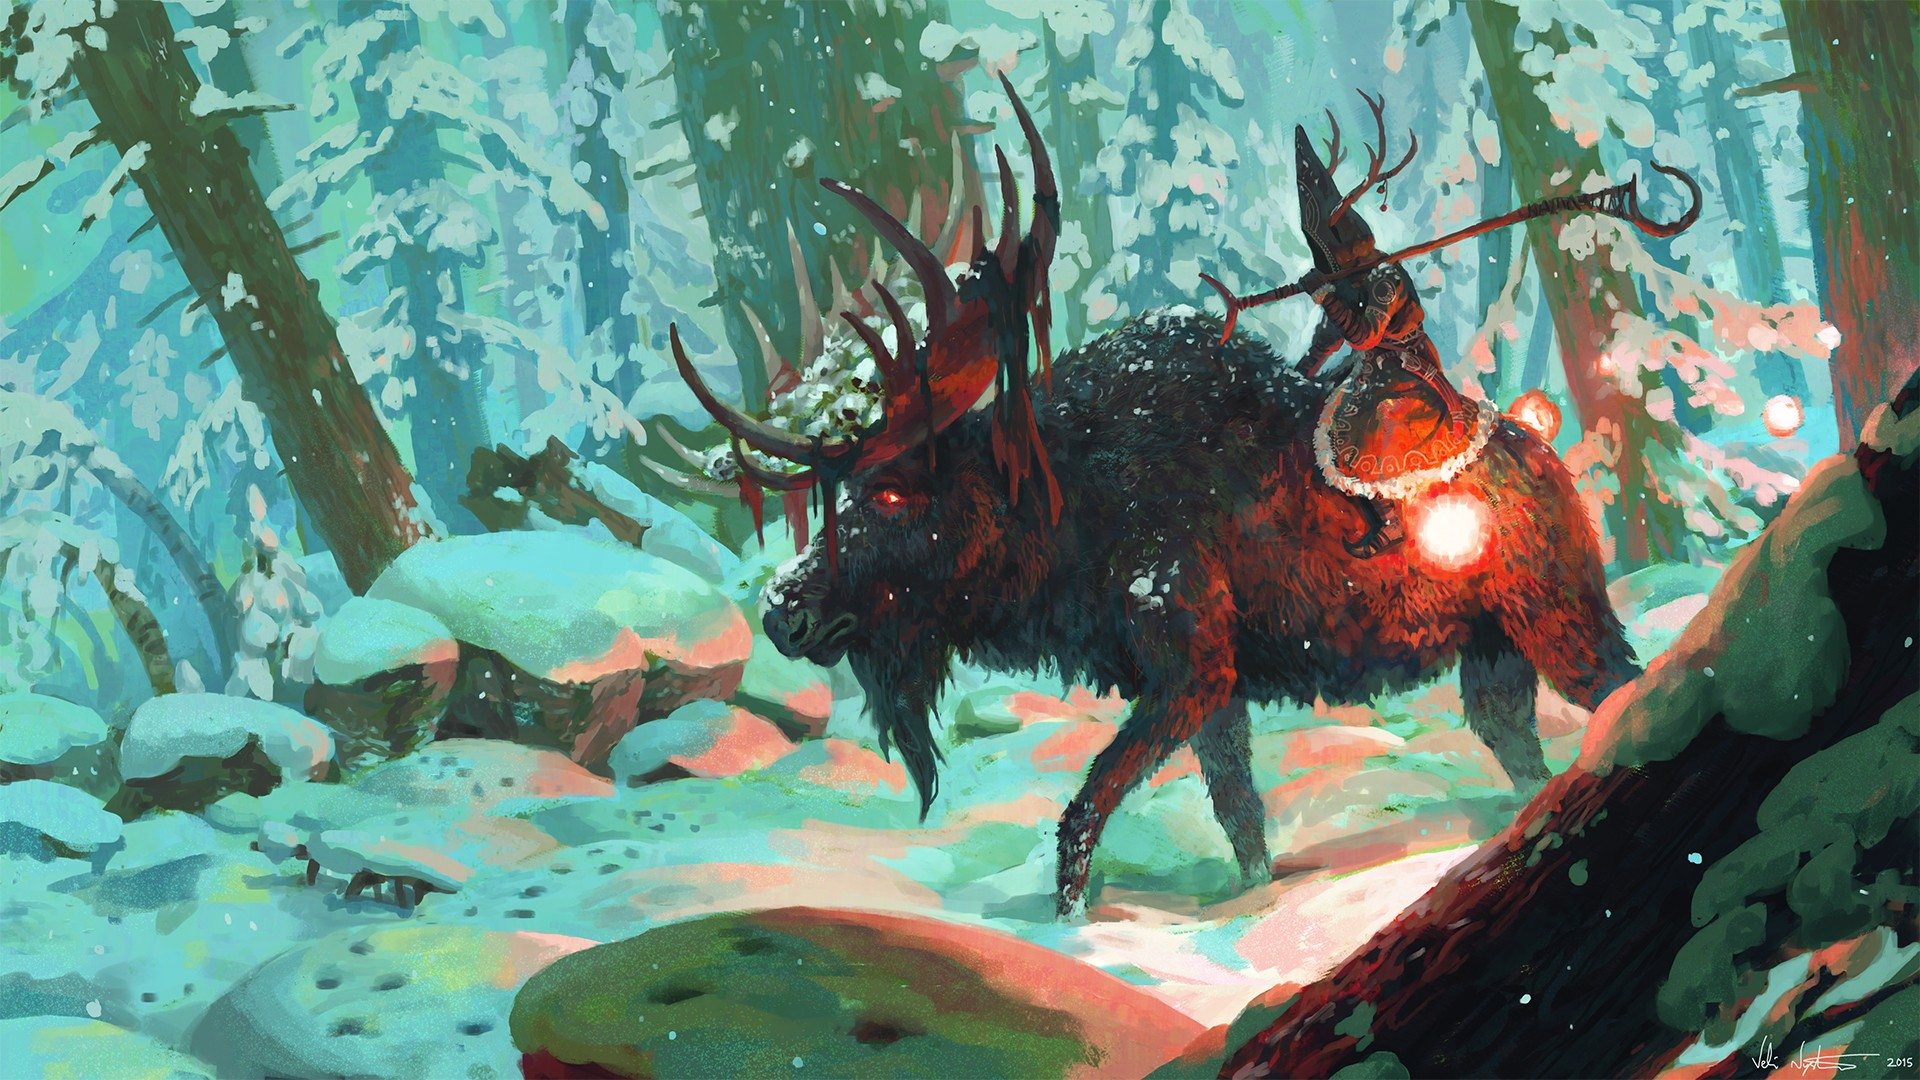 Wizard, Veli Nystrã¶m, Creature, Snow, Forest, Fantasy - Riding A Deer Fantasy , HD Wallpaper & Backgrounds